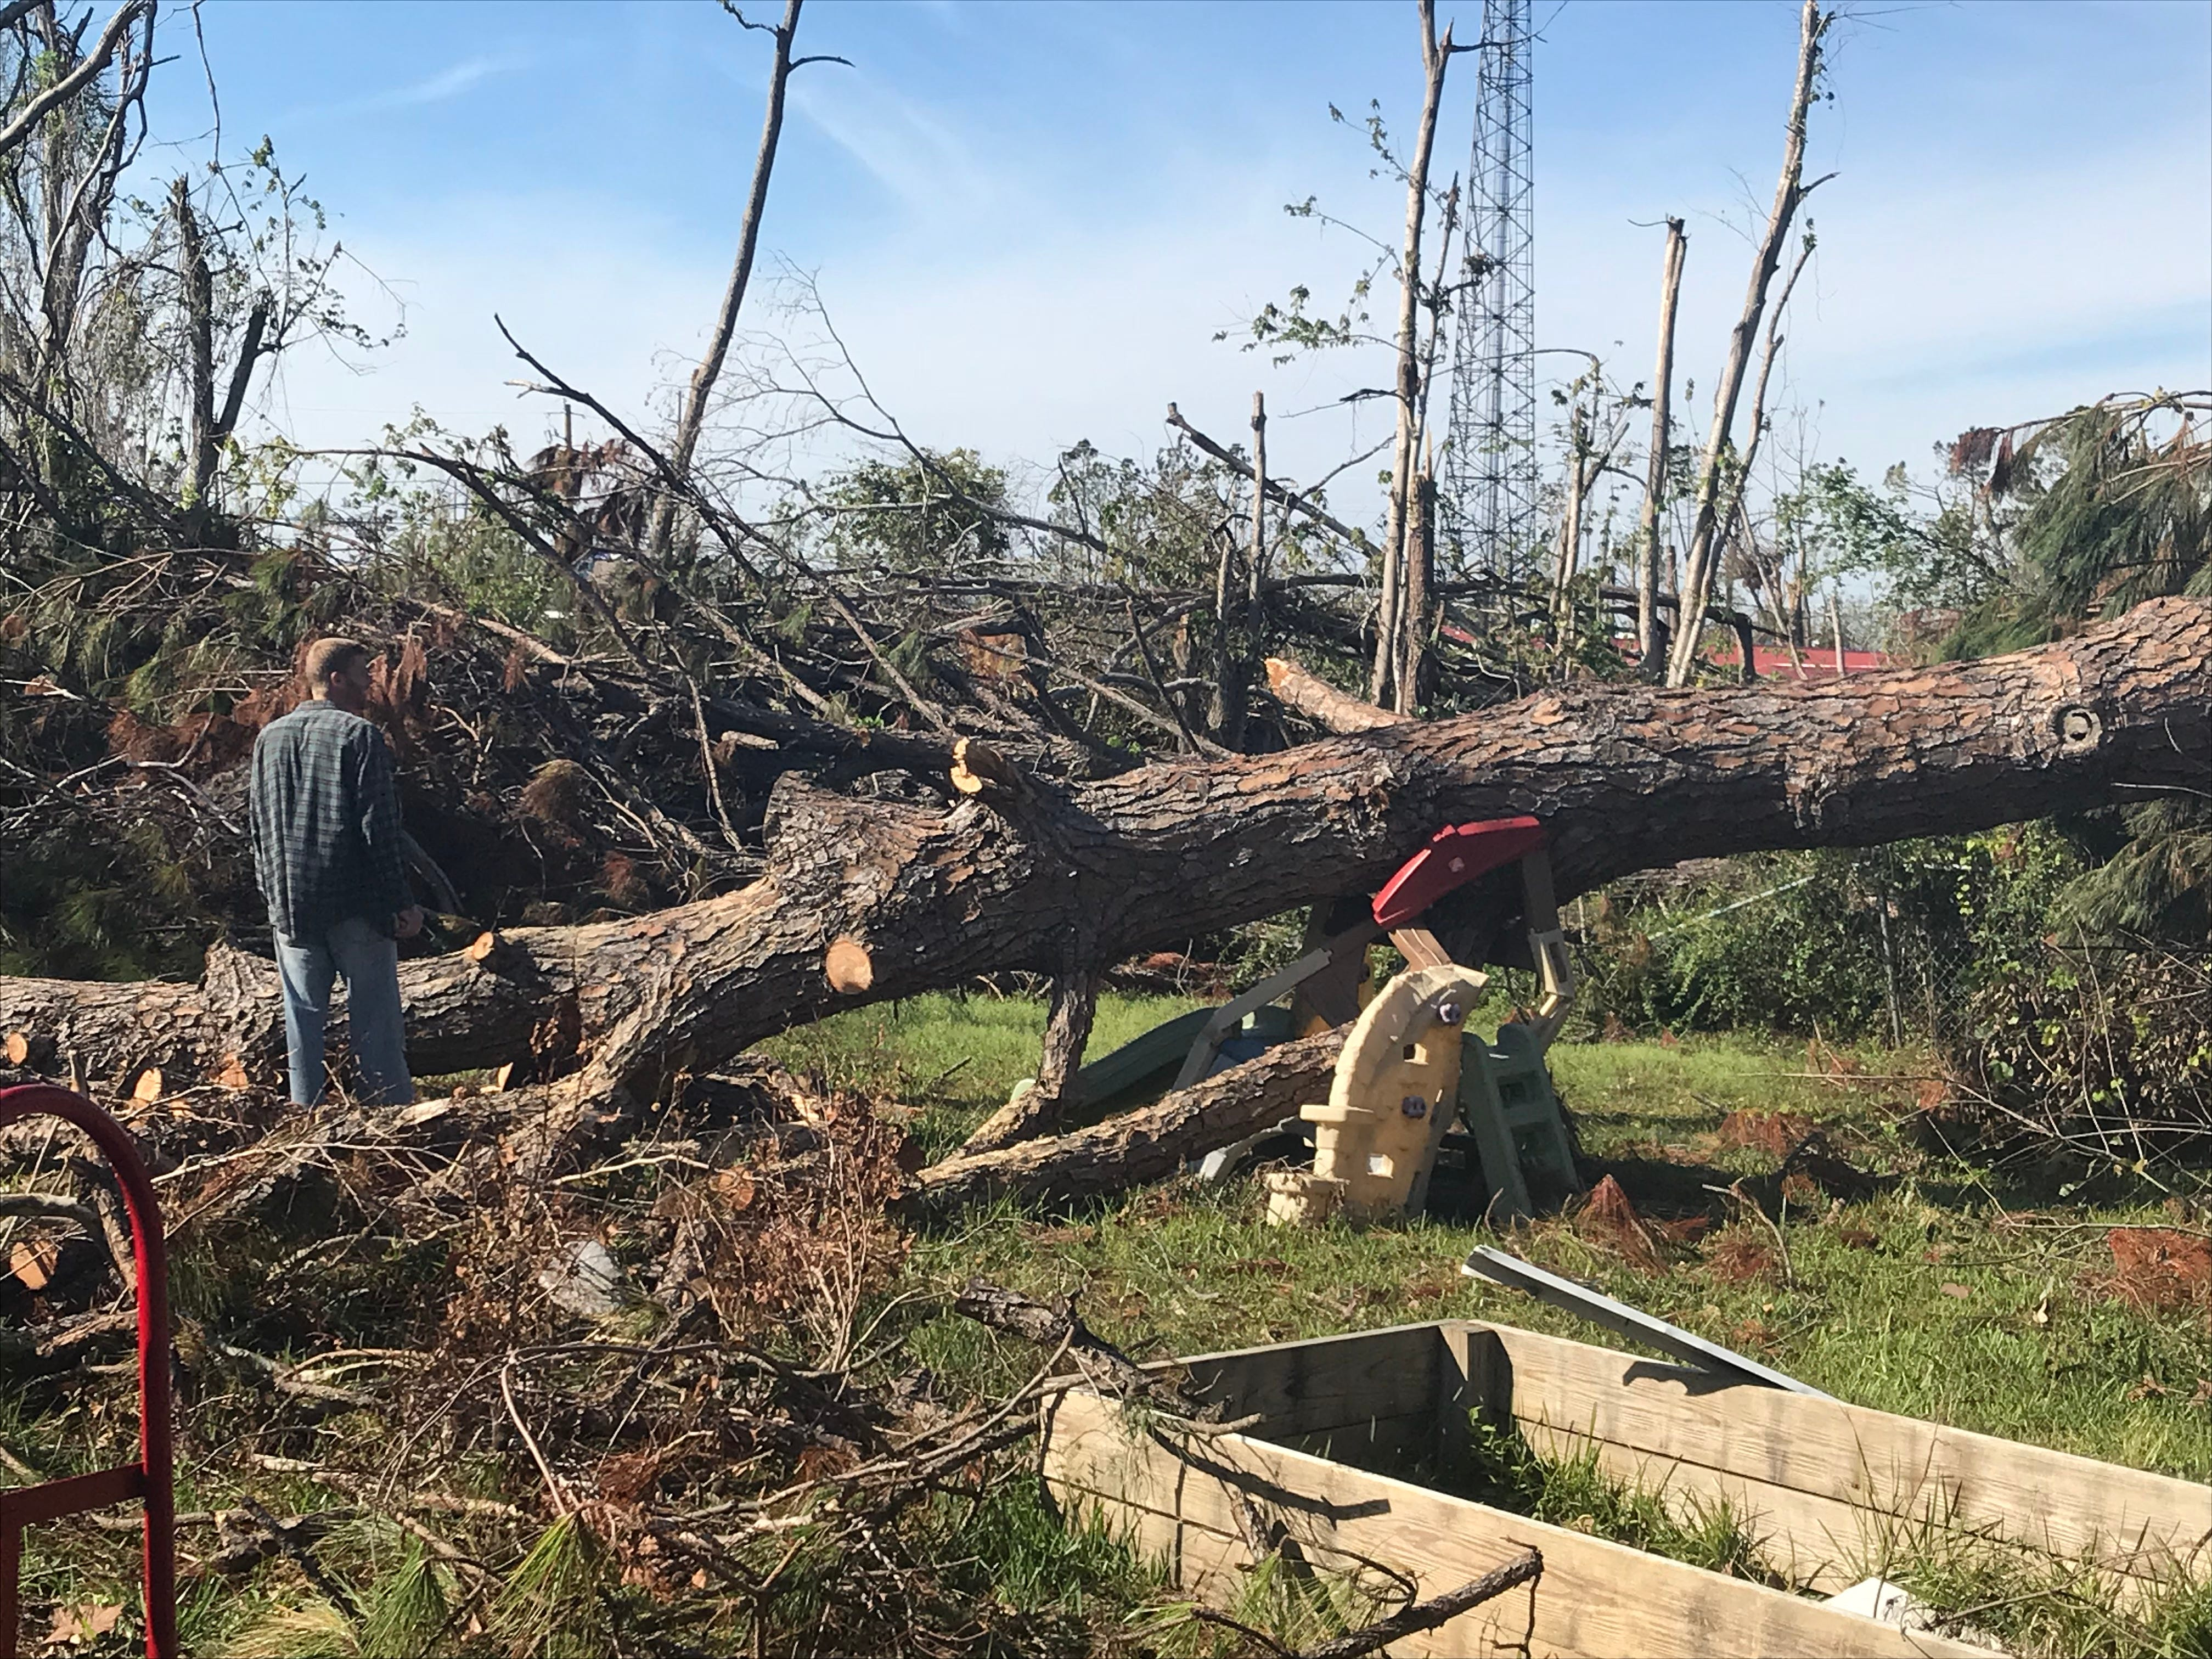 A pine tree in Damon Zeigel's backyard was damaged in the winds of Hurricane Michael in the Florida Panhandle. It fell right onto Zeigel's daughter's slide.